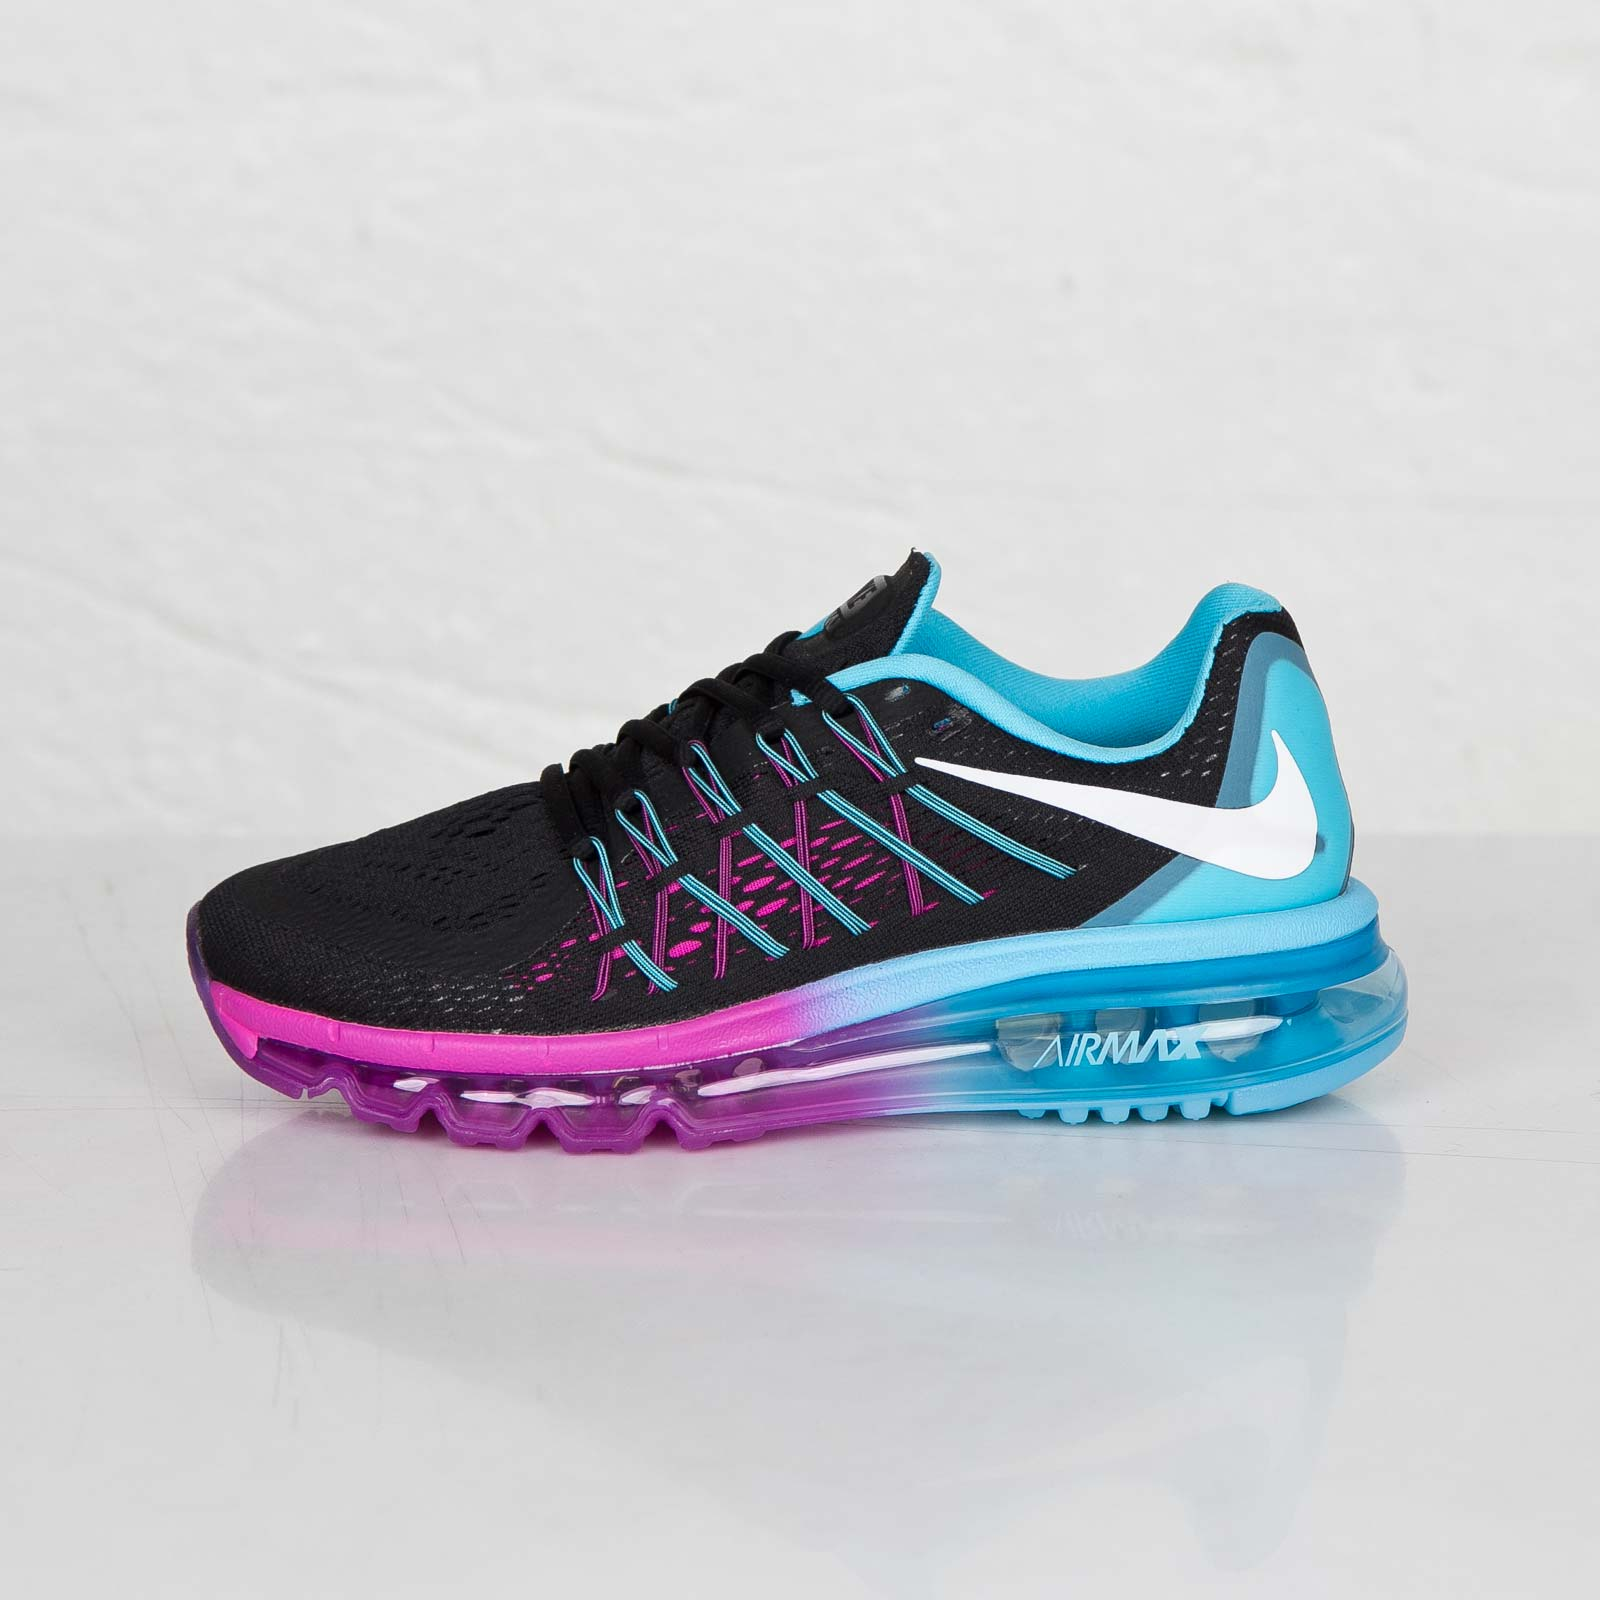 sports shoes e9f89 caca6 Nike Wmns Air Max 2015 - 698903-004 - Sneakersnstuff   sneakers    streetwear online since 1999